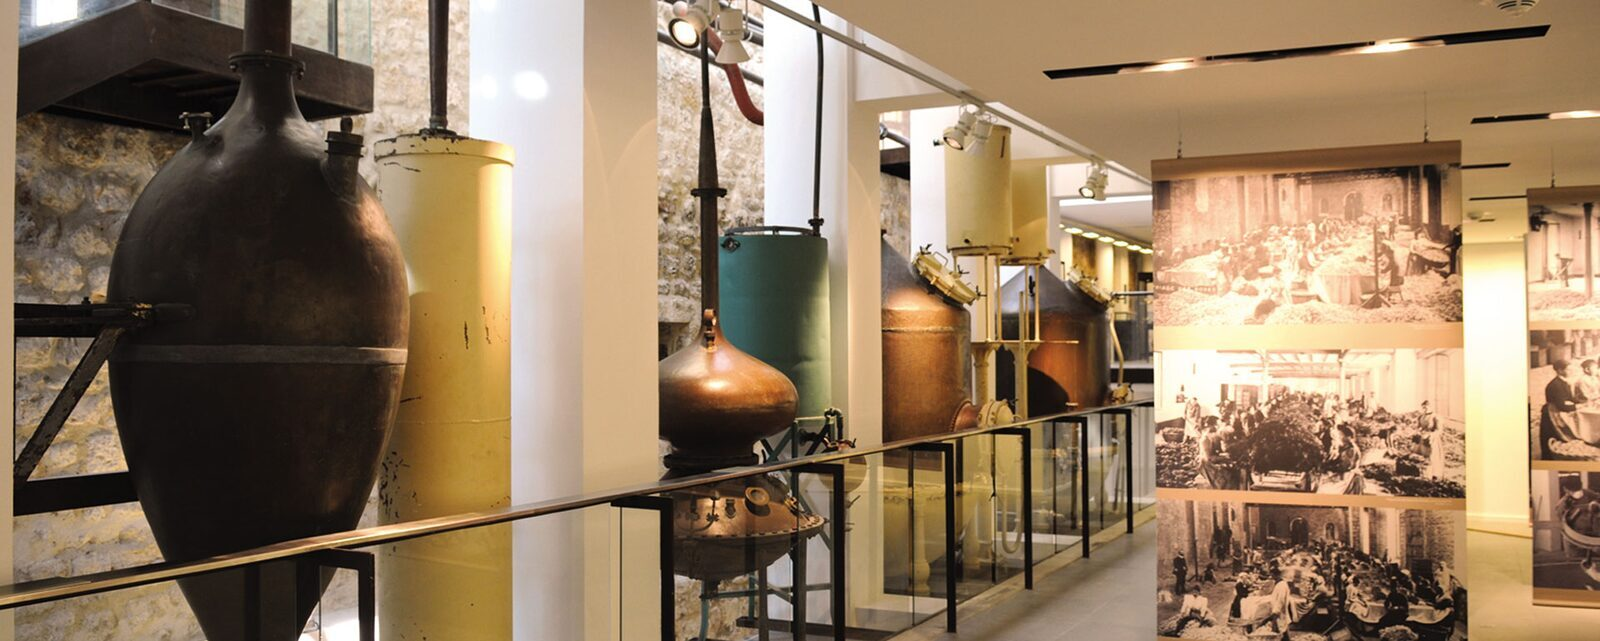 Internationaal parfumerie museum te Grasse